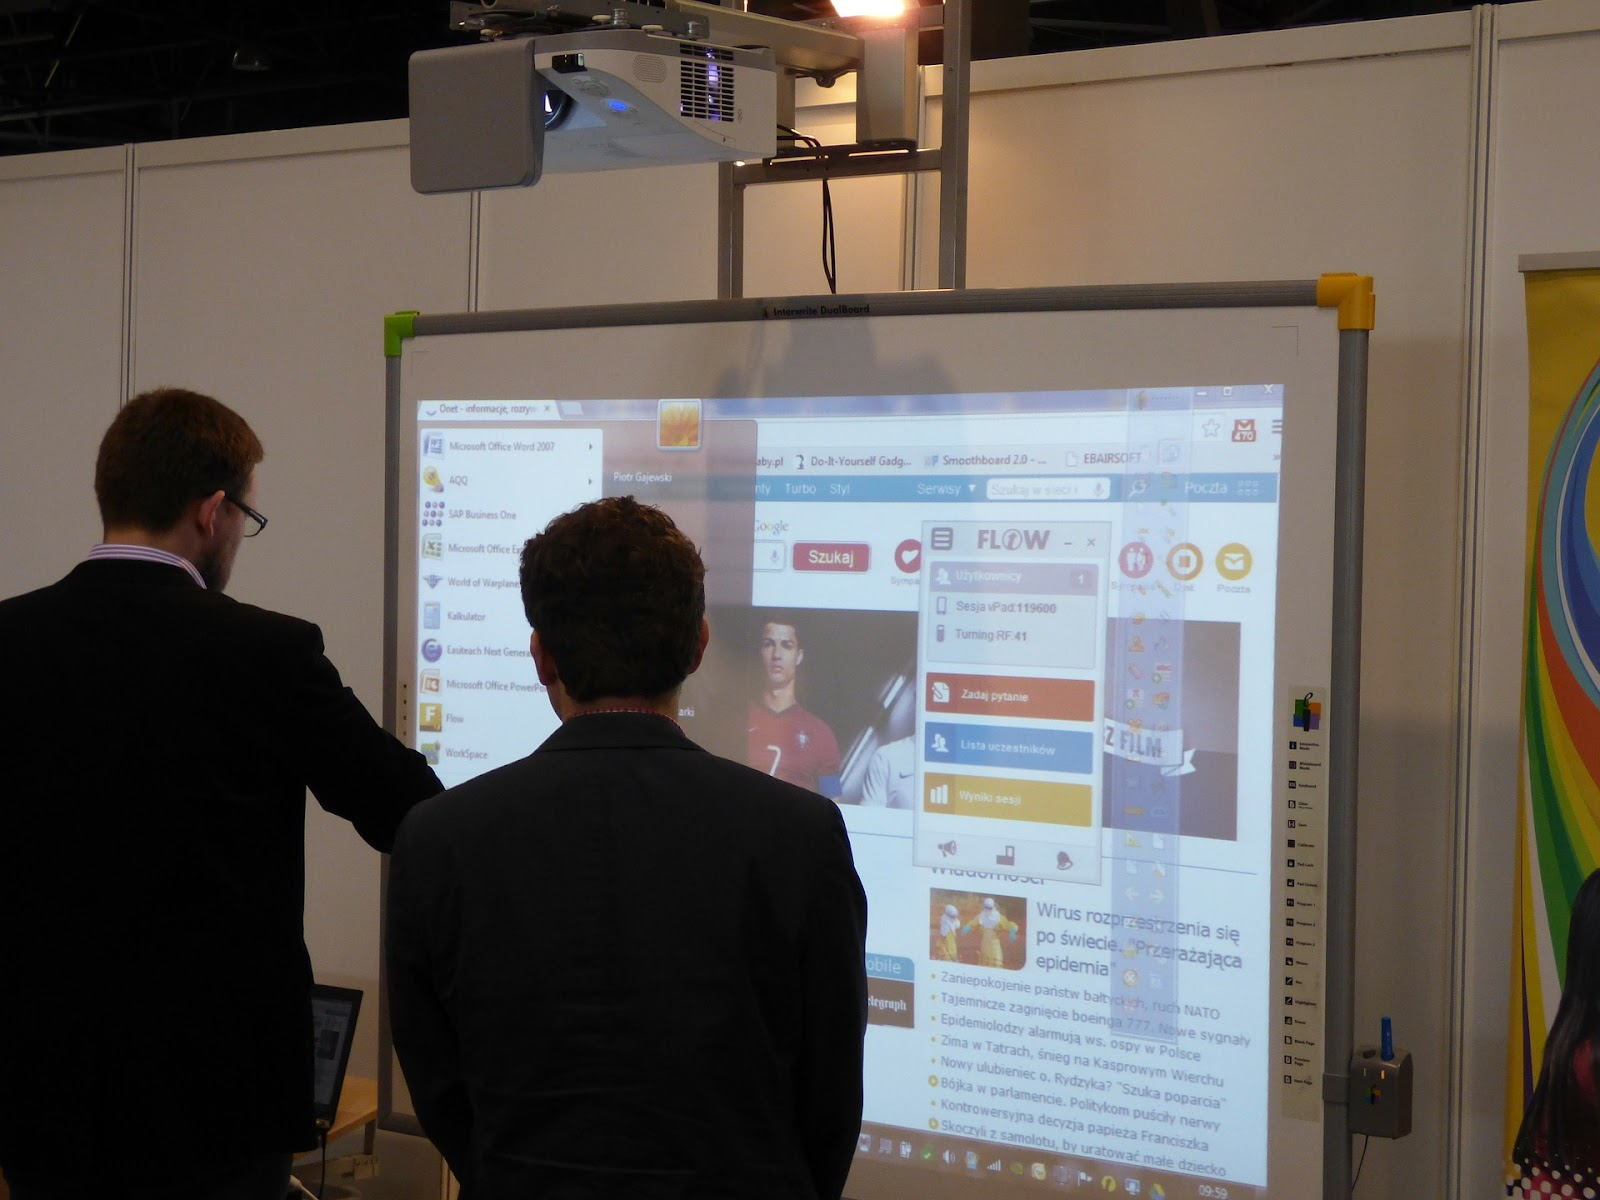 Projector-based interactive whiteboard